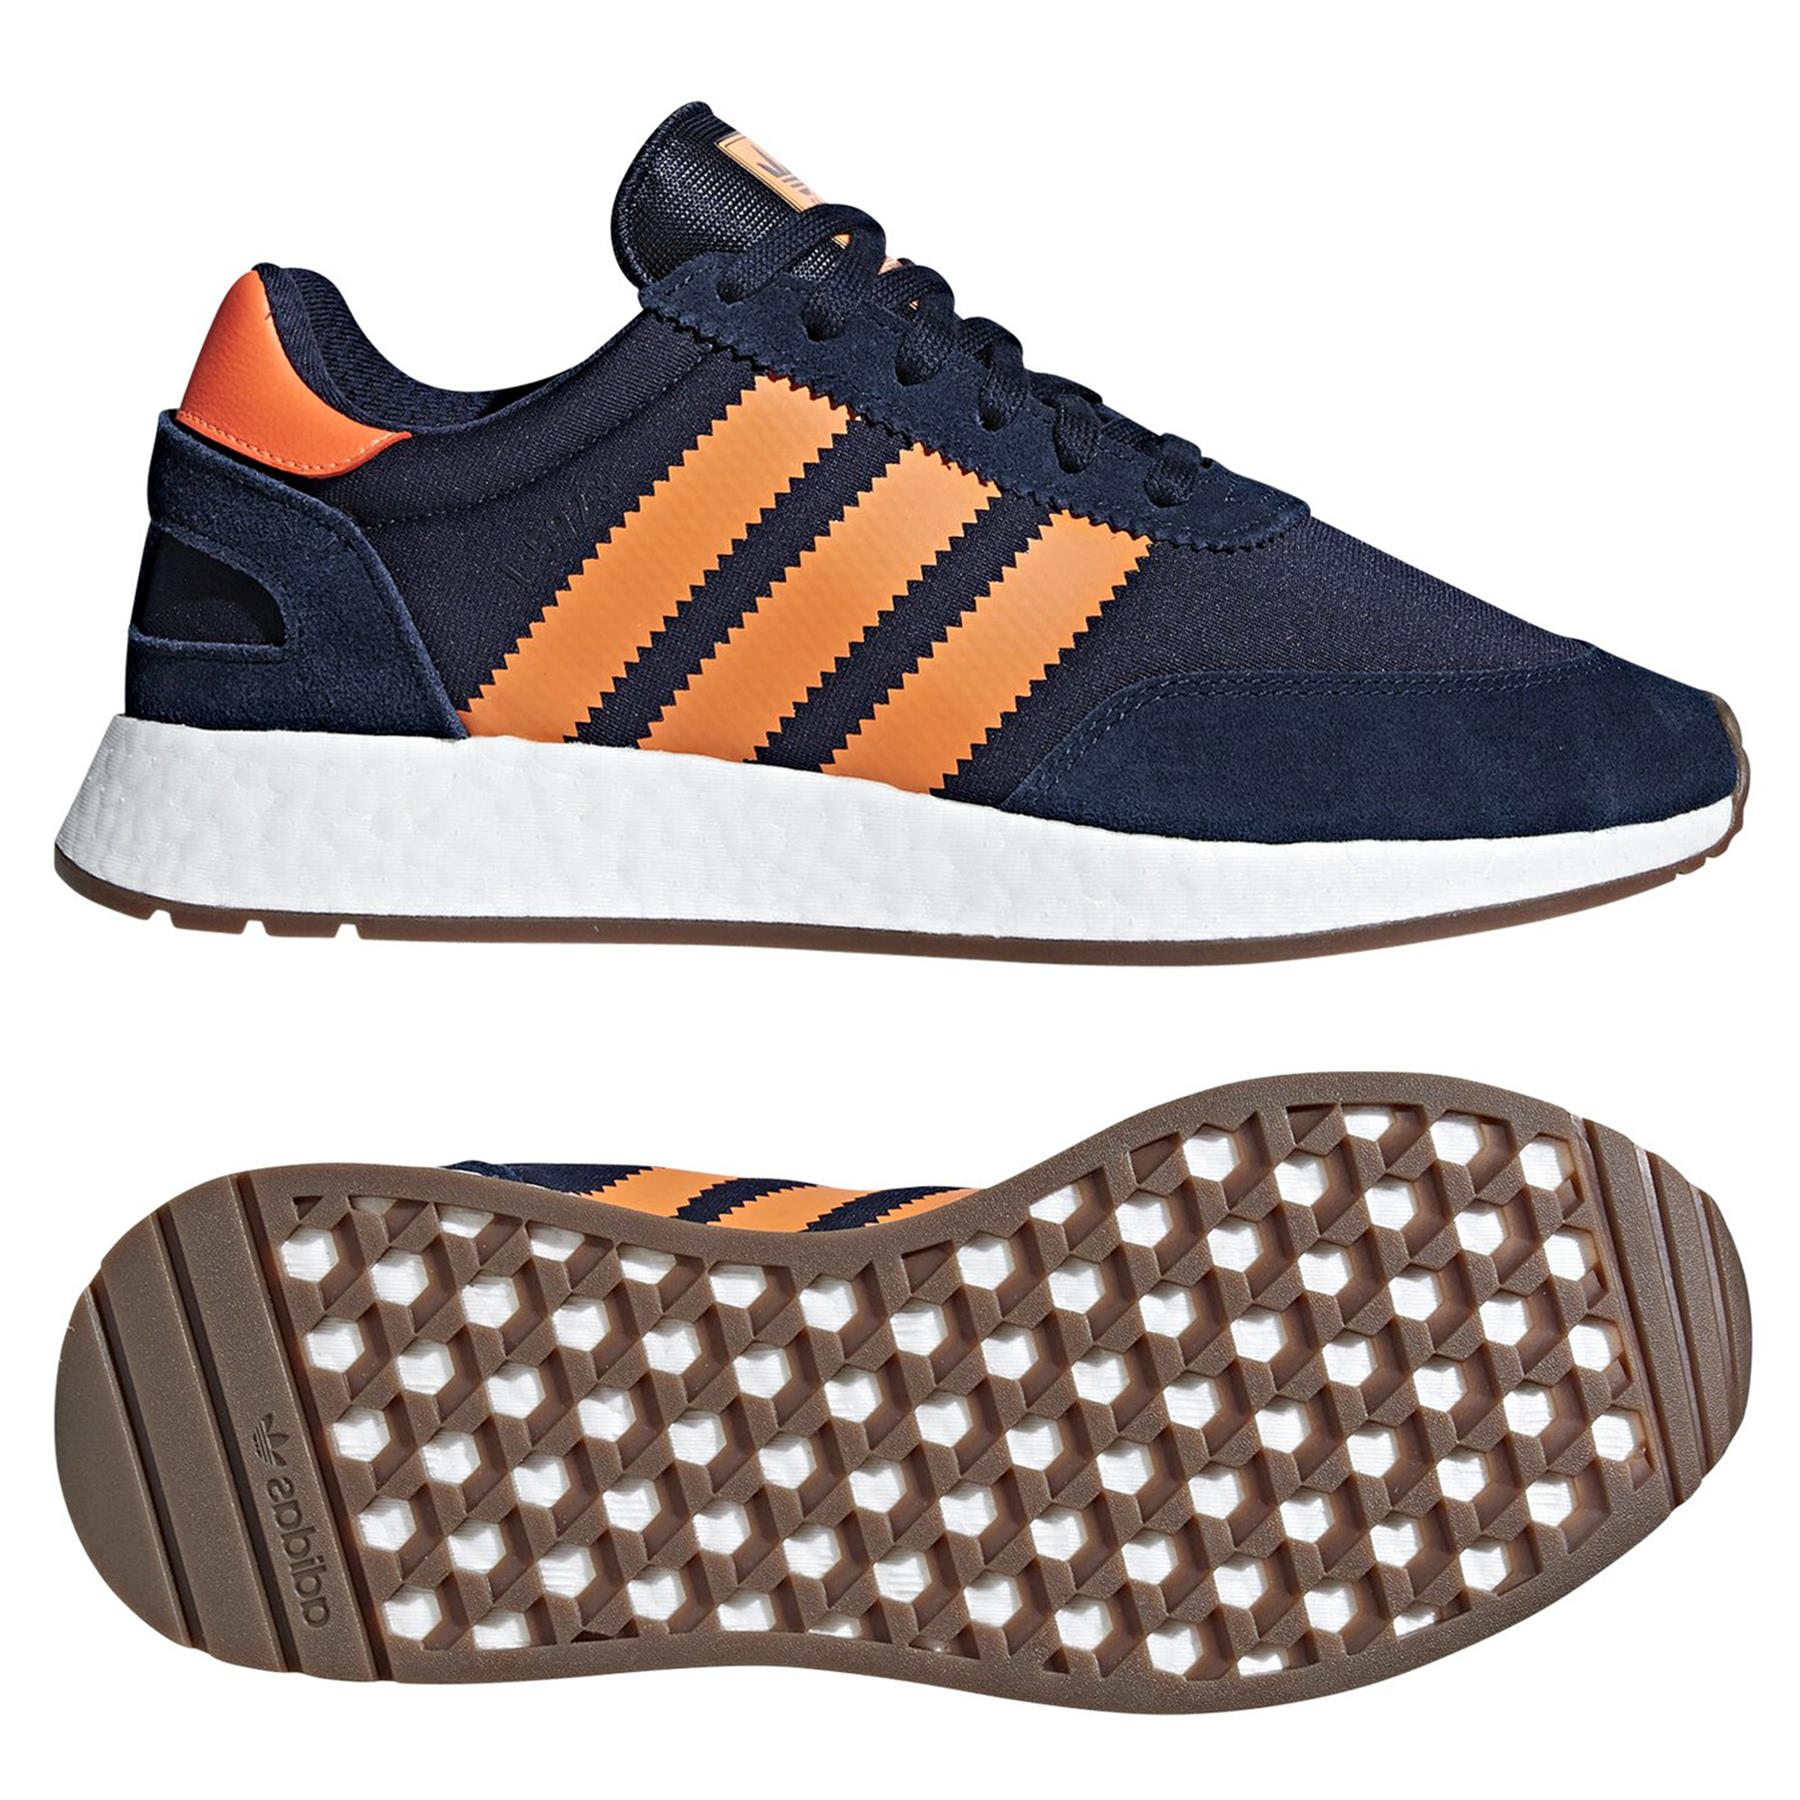 Adidas I-5923 Shoes B37919 Retro Runner Running Sneakers Gym Trainers